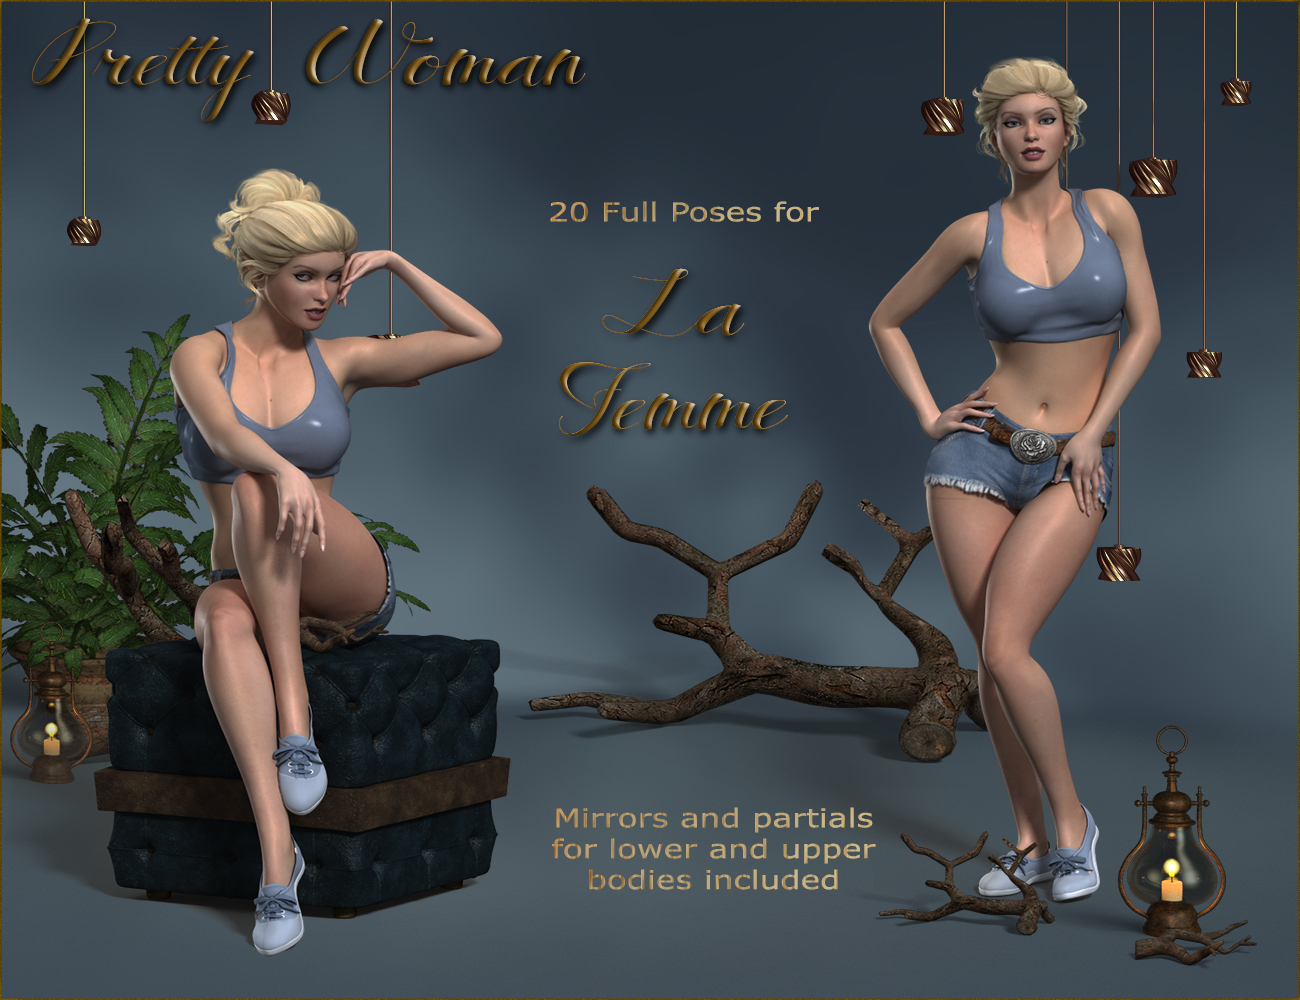 Pretty Woman Poses for La Femme by ilona